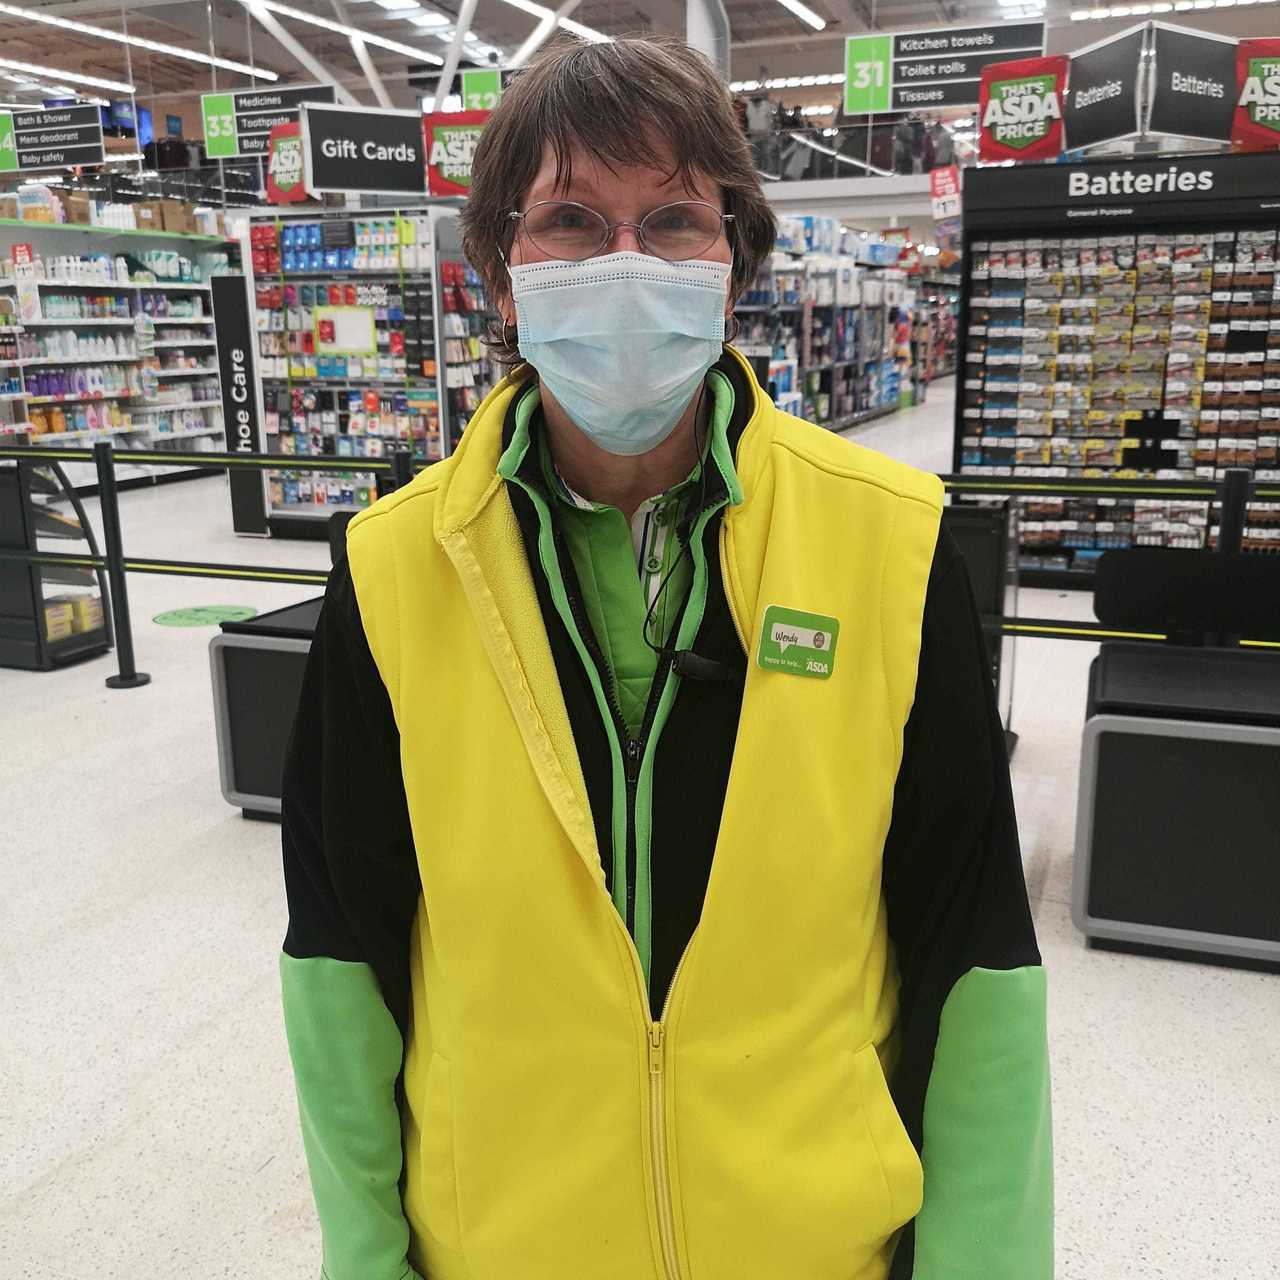 15 years' service for Wendy | Asda Elgin